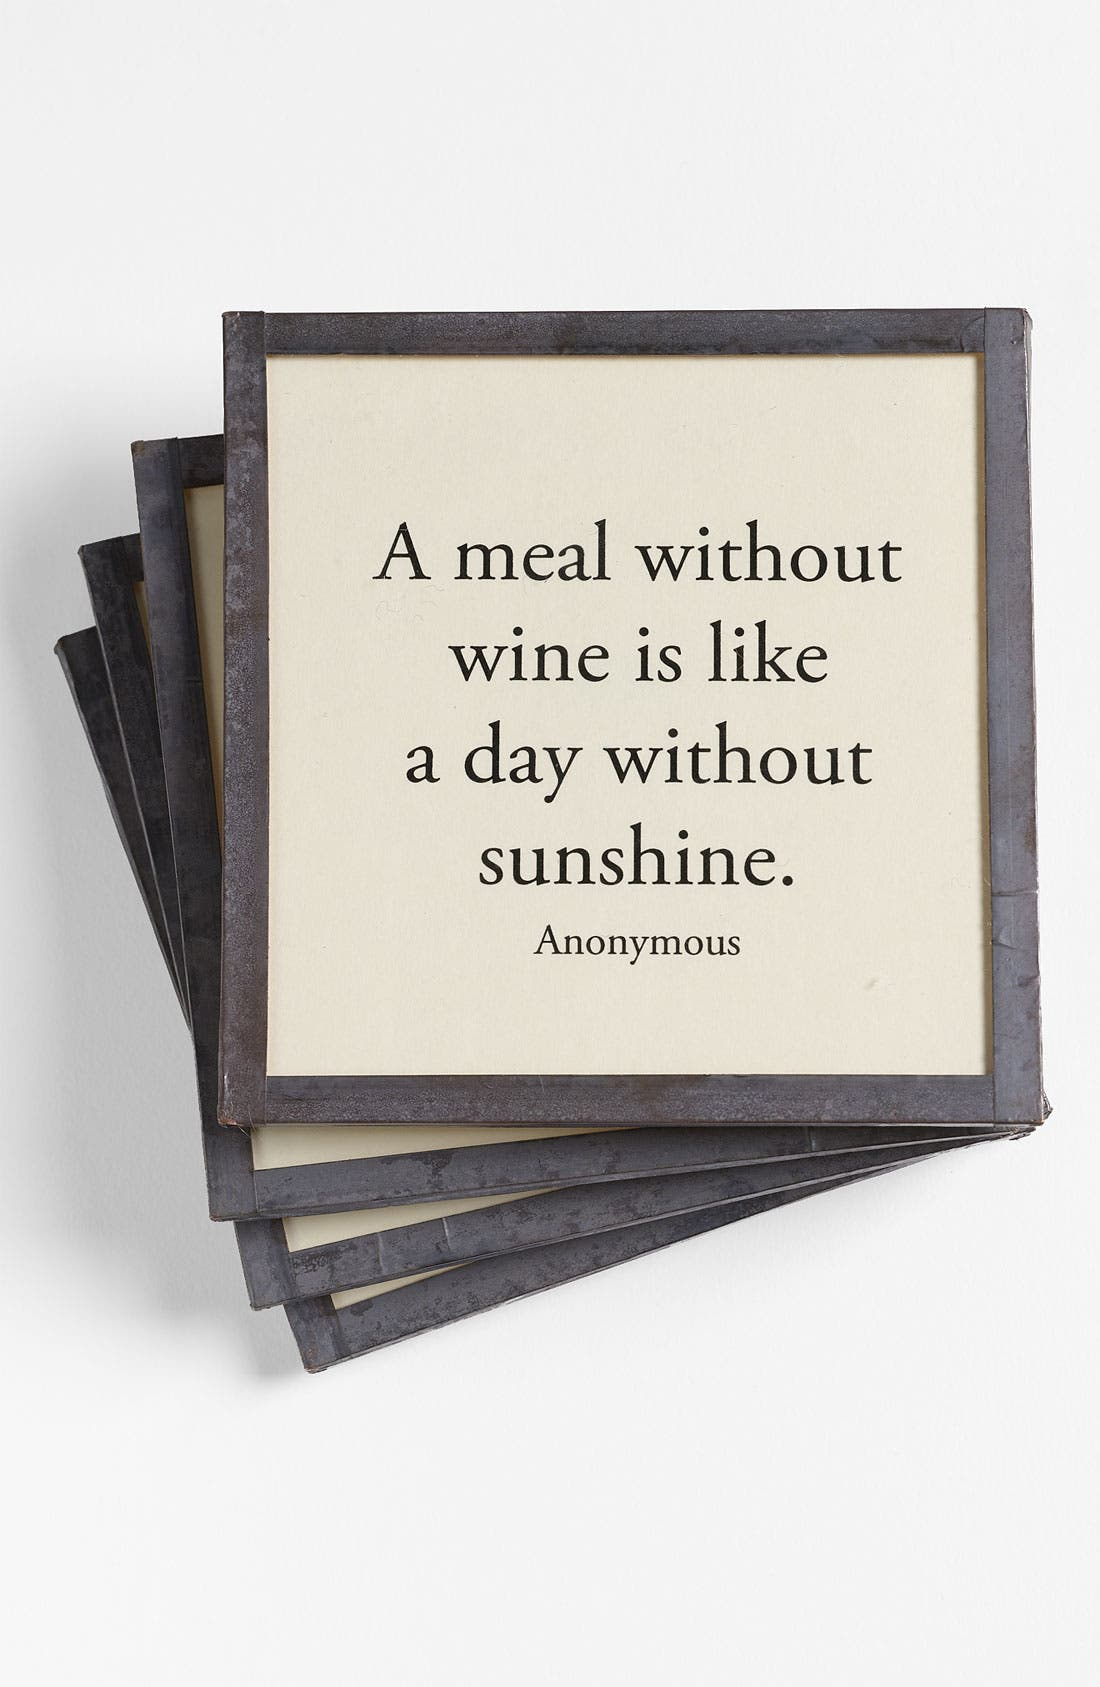 Alternate Image 1 Selected - Ben's Garden 'A Meal without Wine' Coasters (Set of 4)